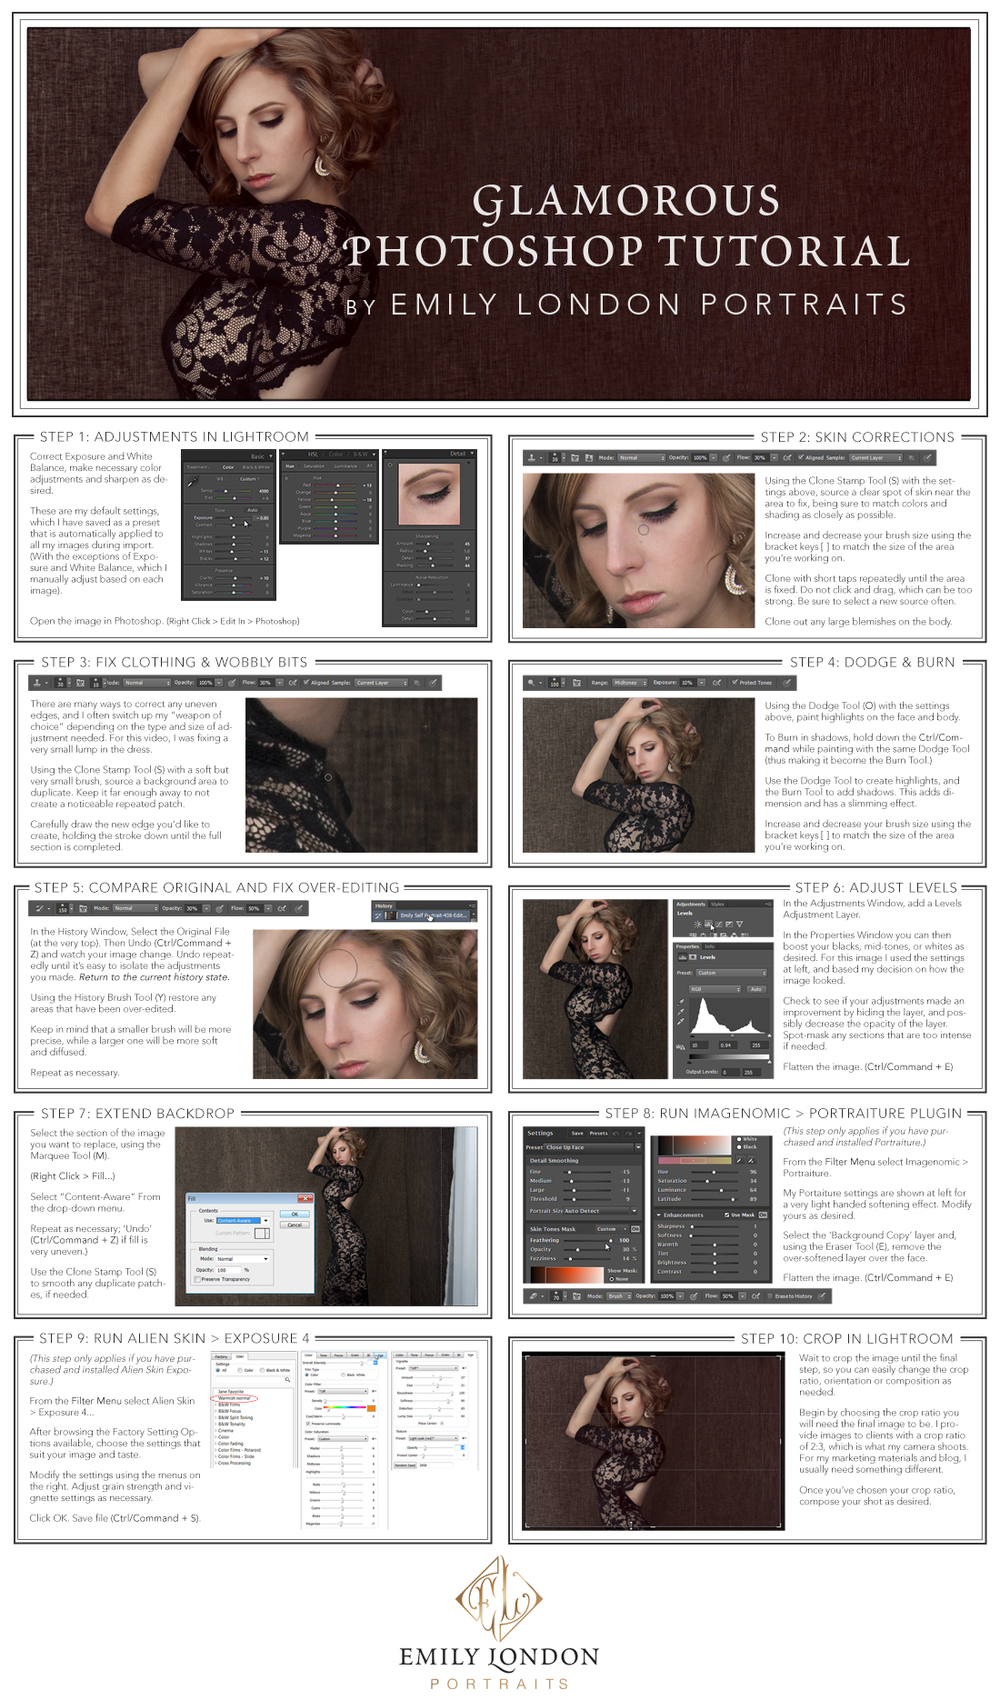 In this tutorial, Utah Glamor Portrait Photographer, Emily London, will teach how toedit a modern glamour portrait in Photoshop.